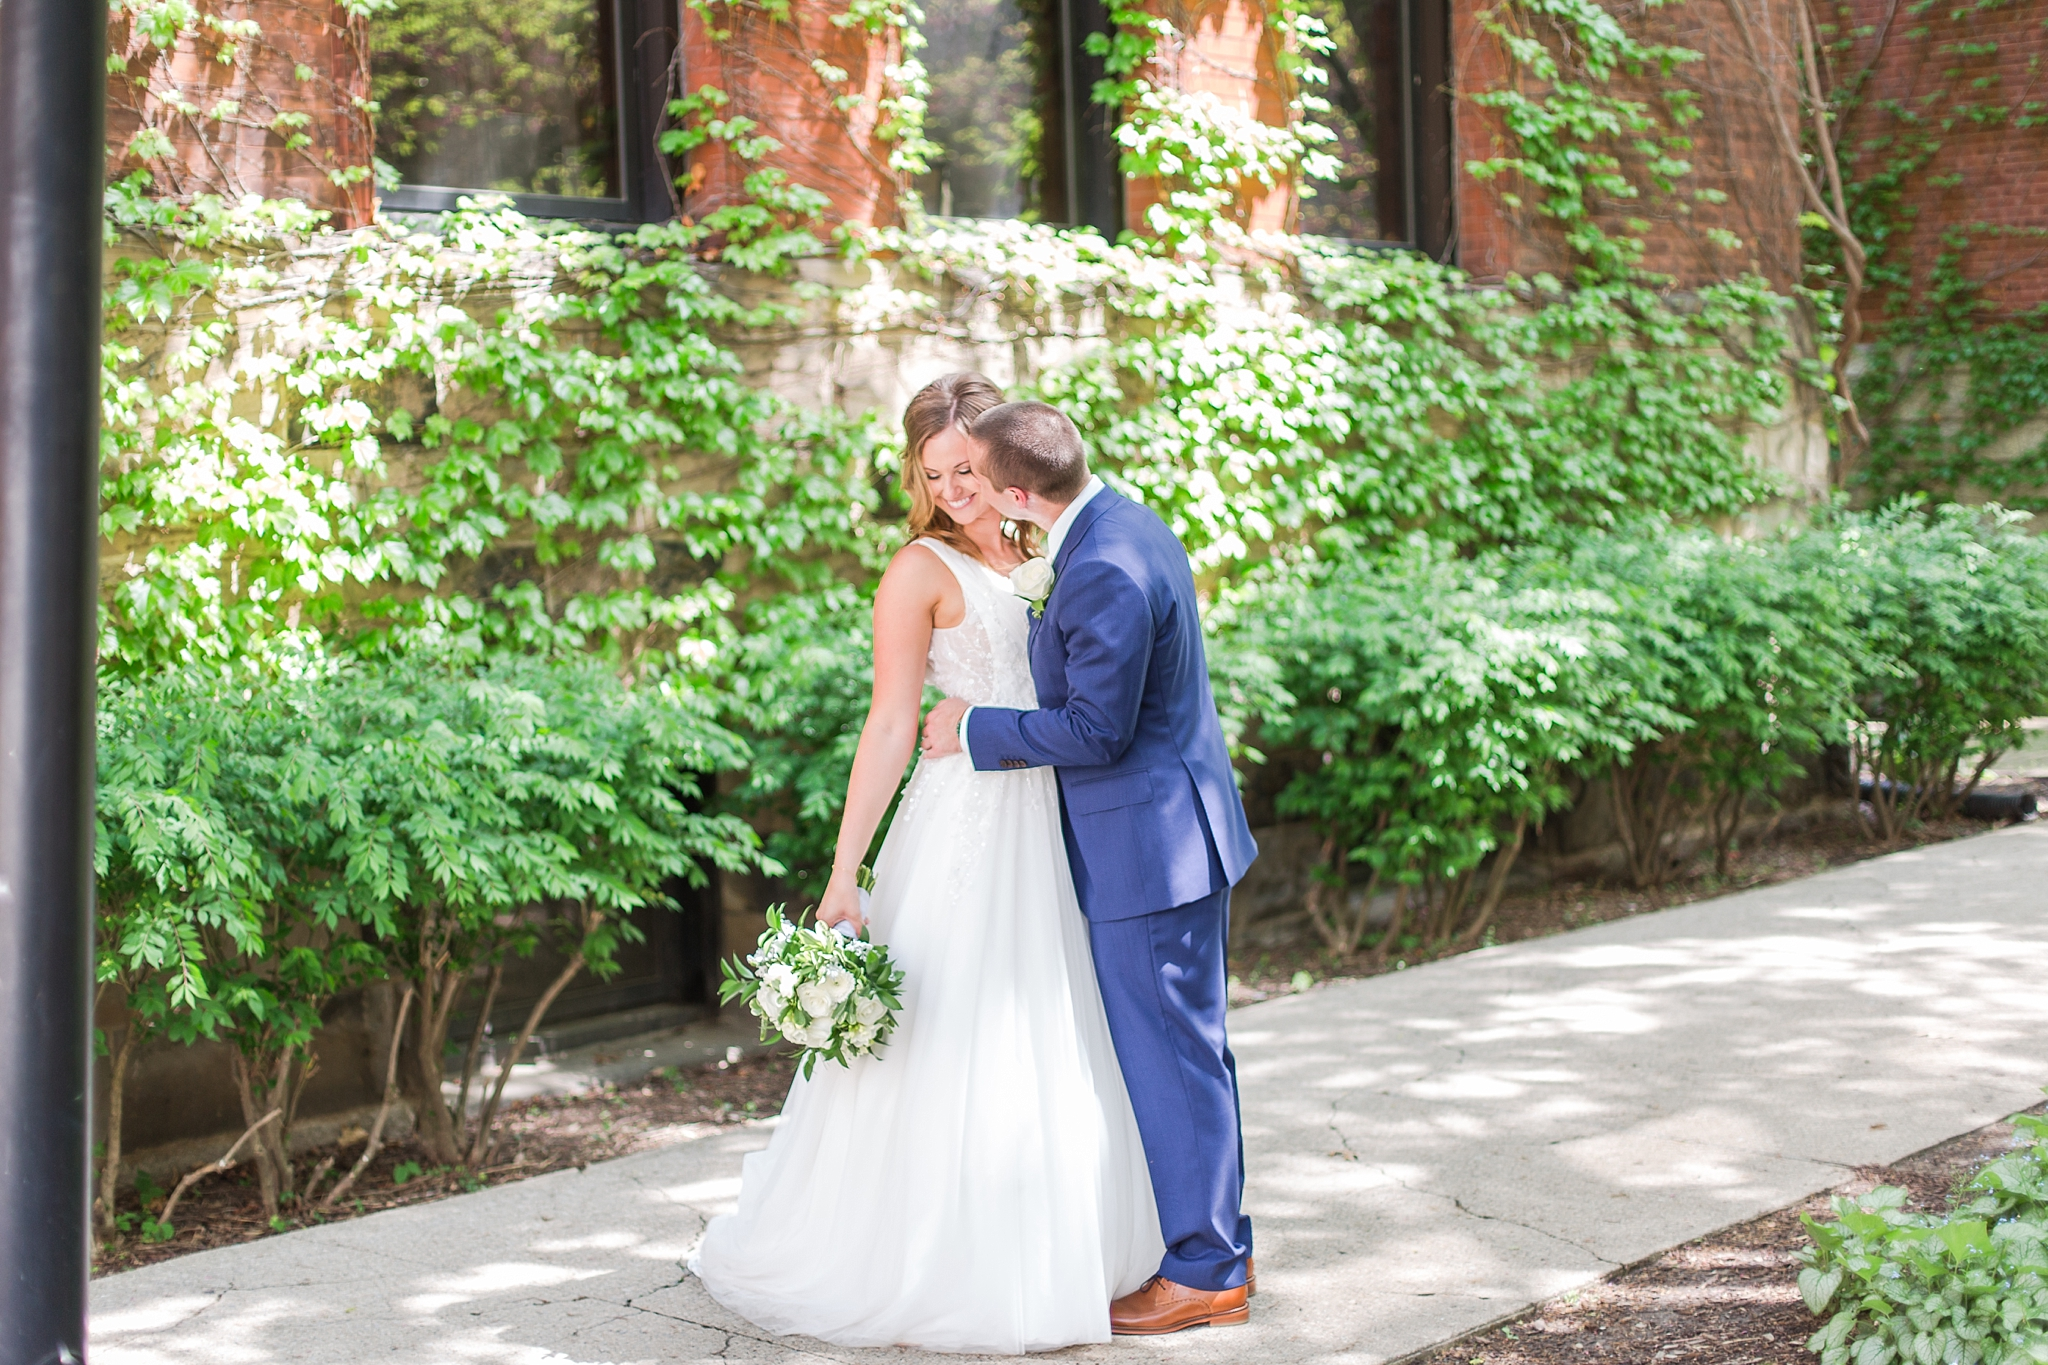 joyful-candid-laid-back-wedding-photos-in-ann-arbor-michigan-and-at-the-eagle-crest-golf-resort-by-courtney-carolyn-photography_0062.jpg